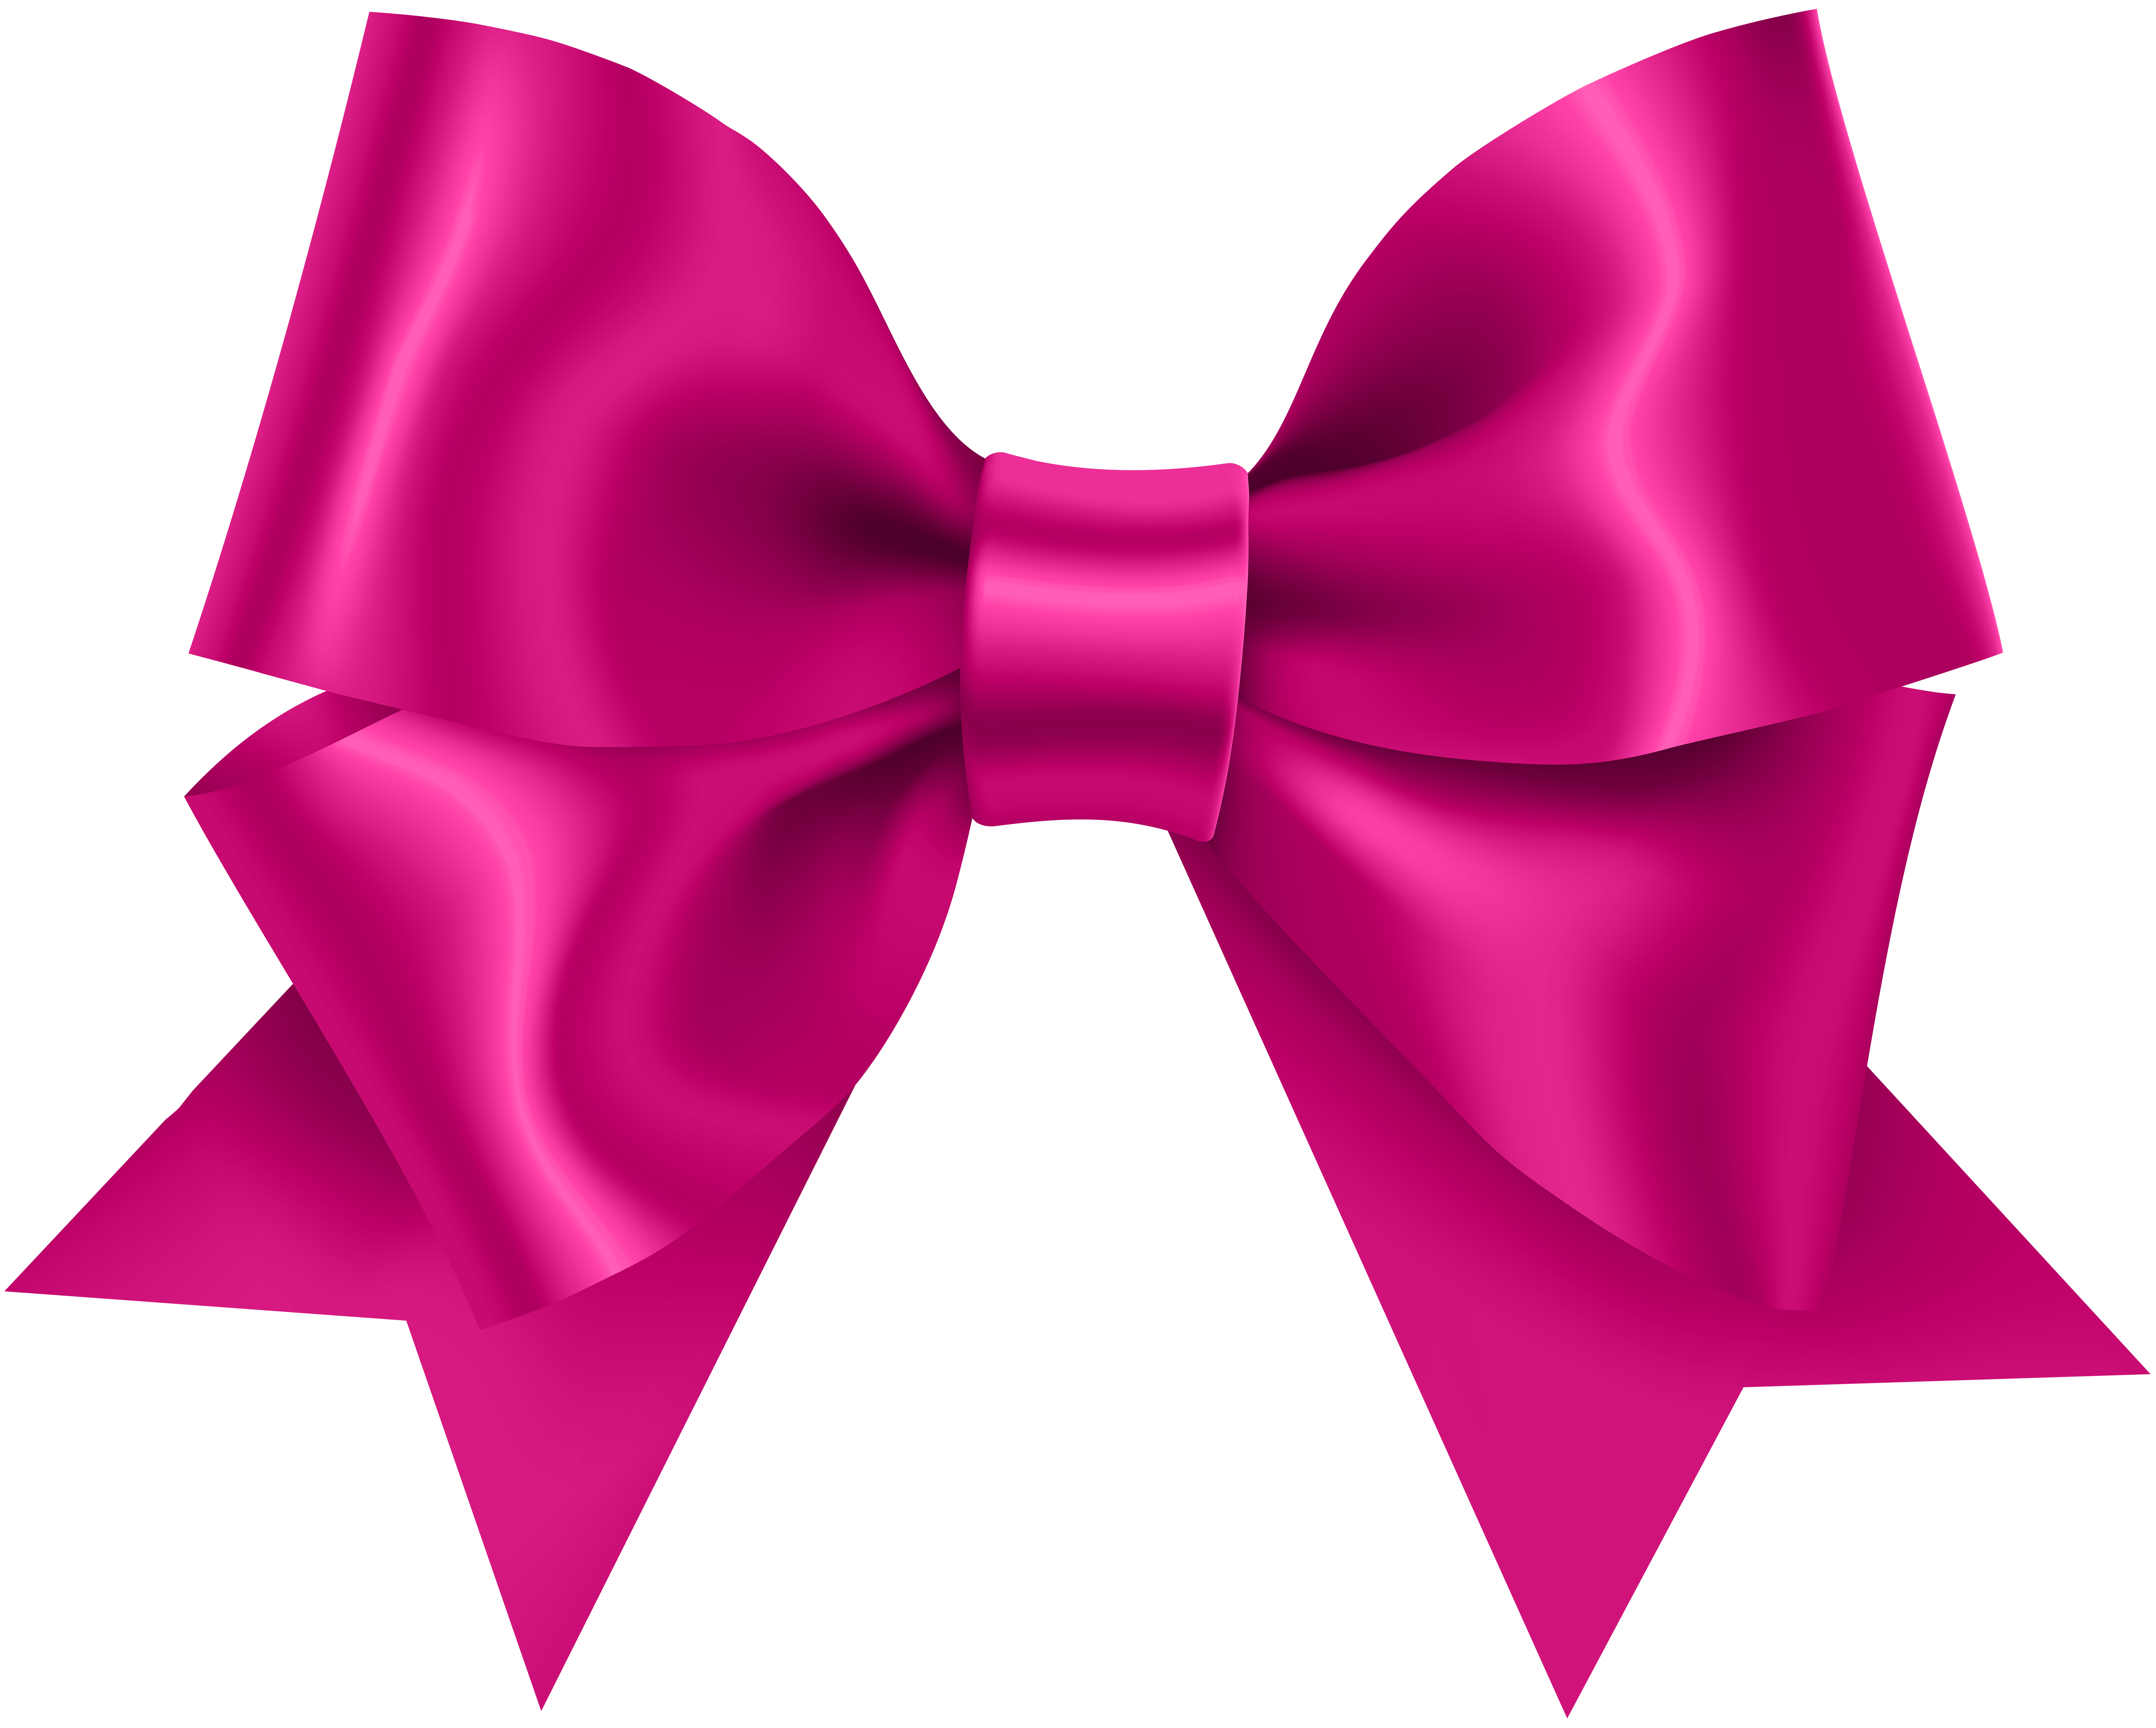 Pink Bow Transparent Clip Art Gallery Yopriceville High Quality Images And Transparent Png Free Clipart Bows Clip Art Pink Bow